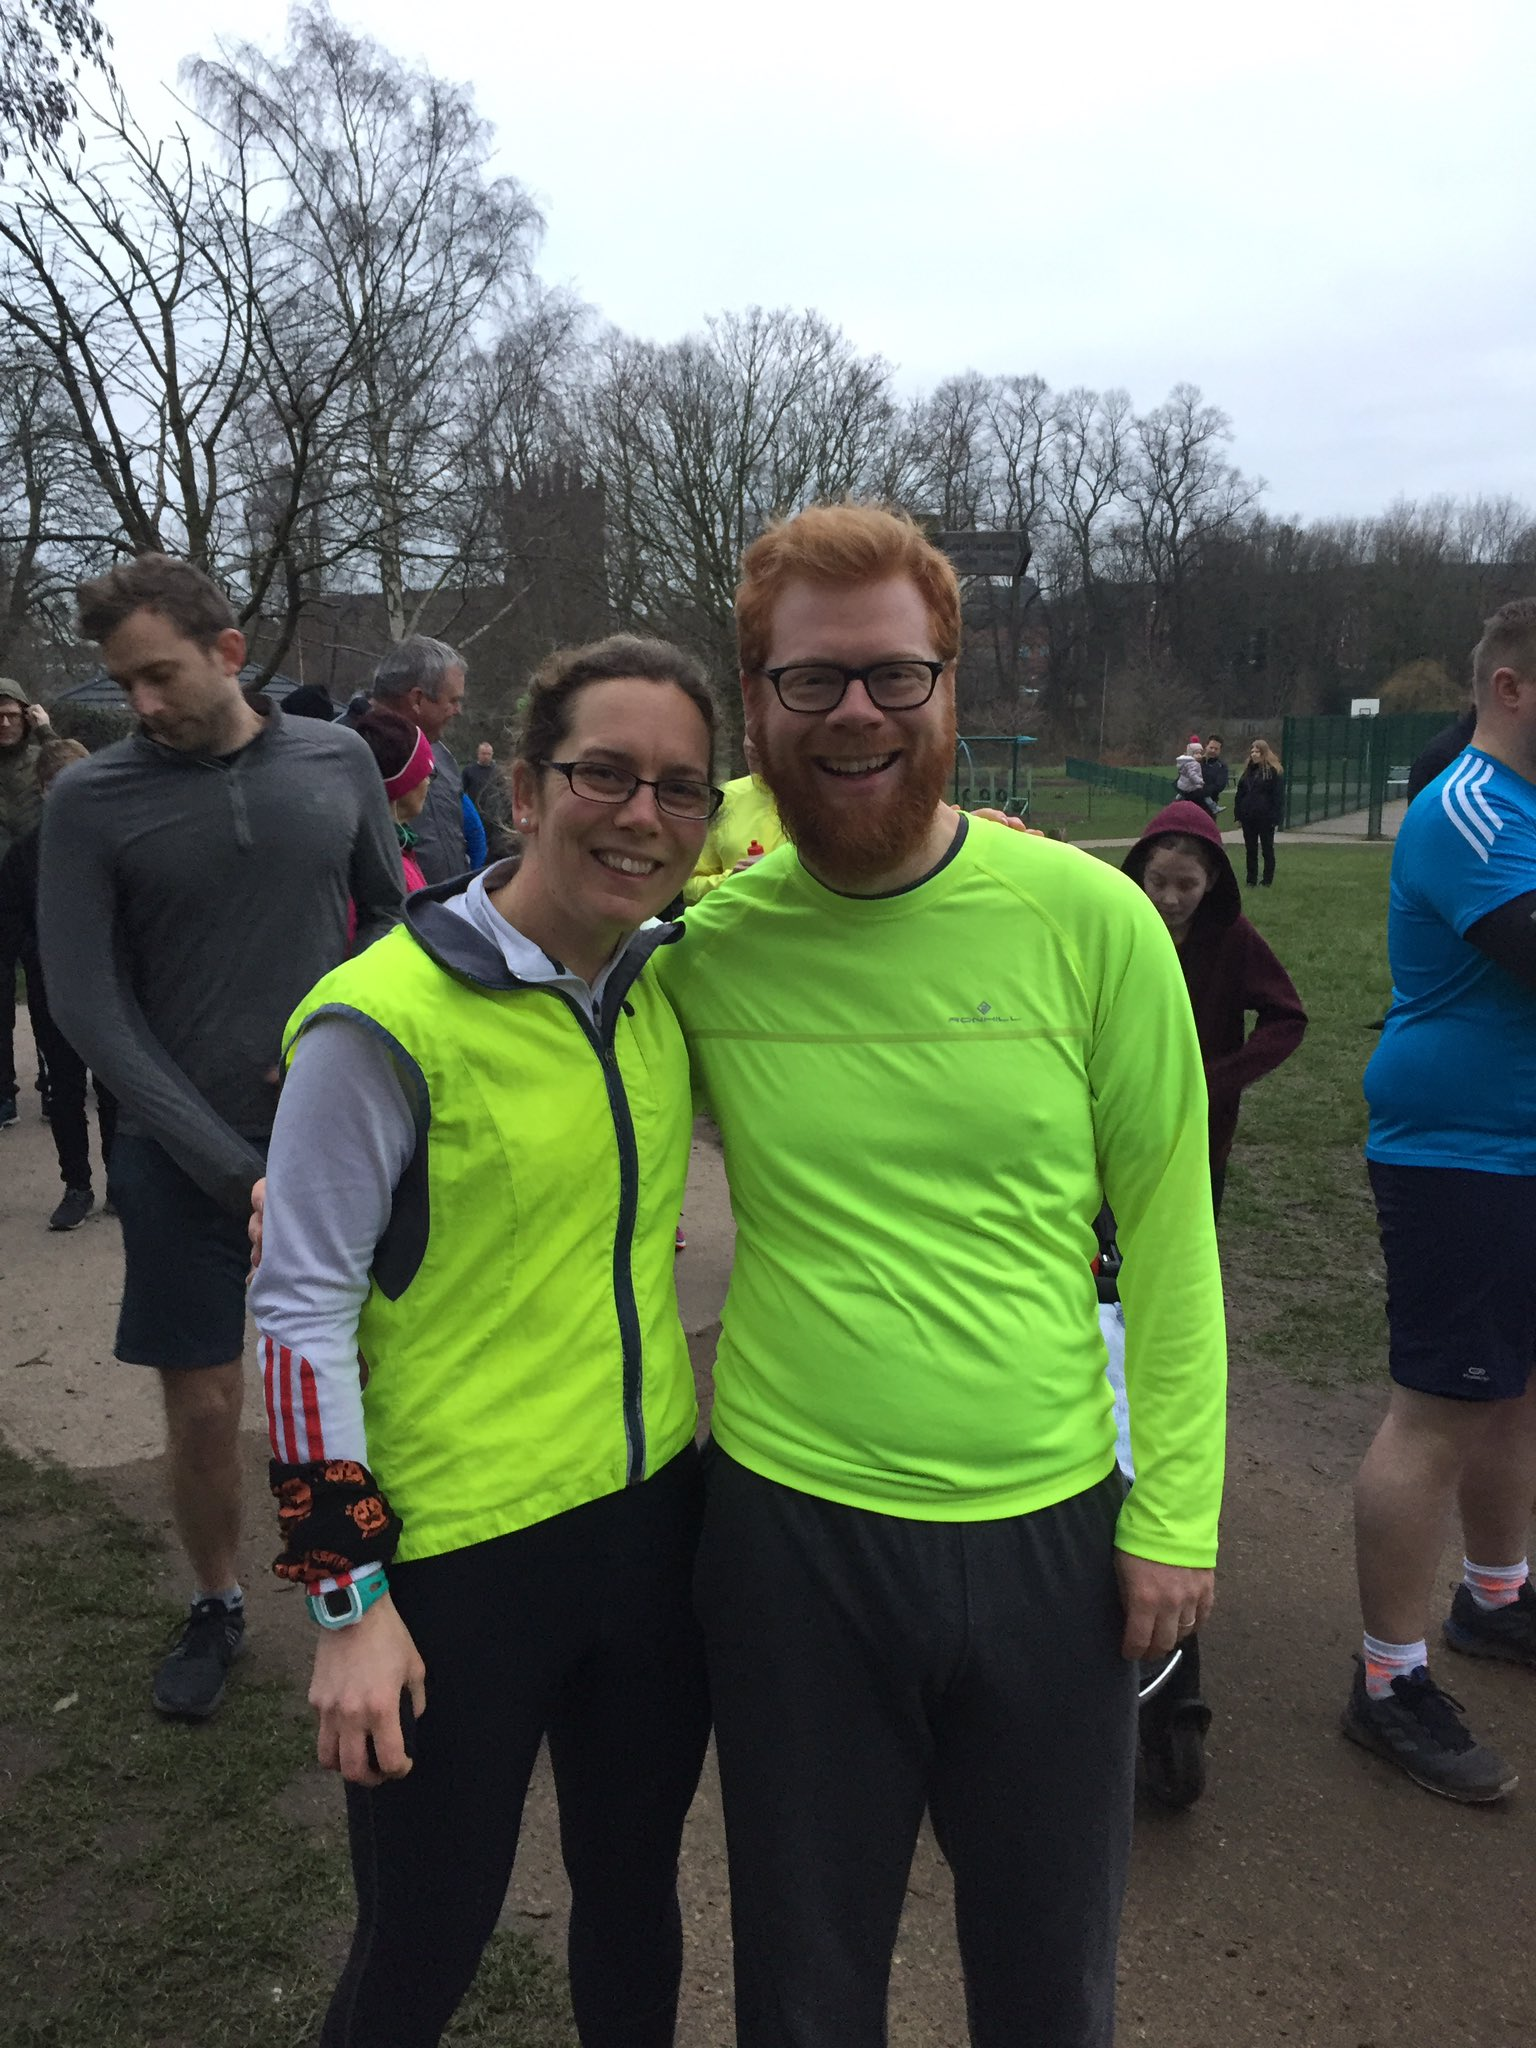 Me and my cousin after the second parkrun - with a real smile on my face this time!